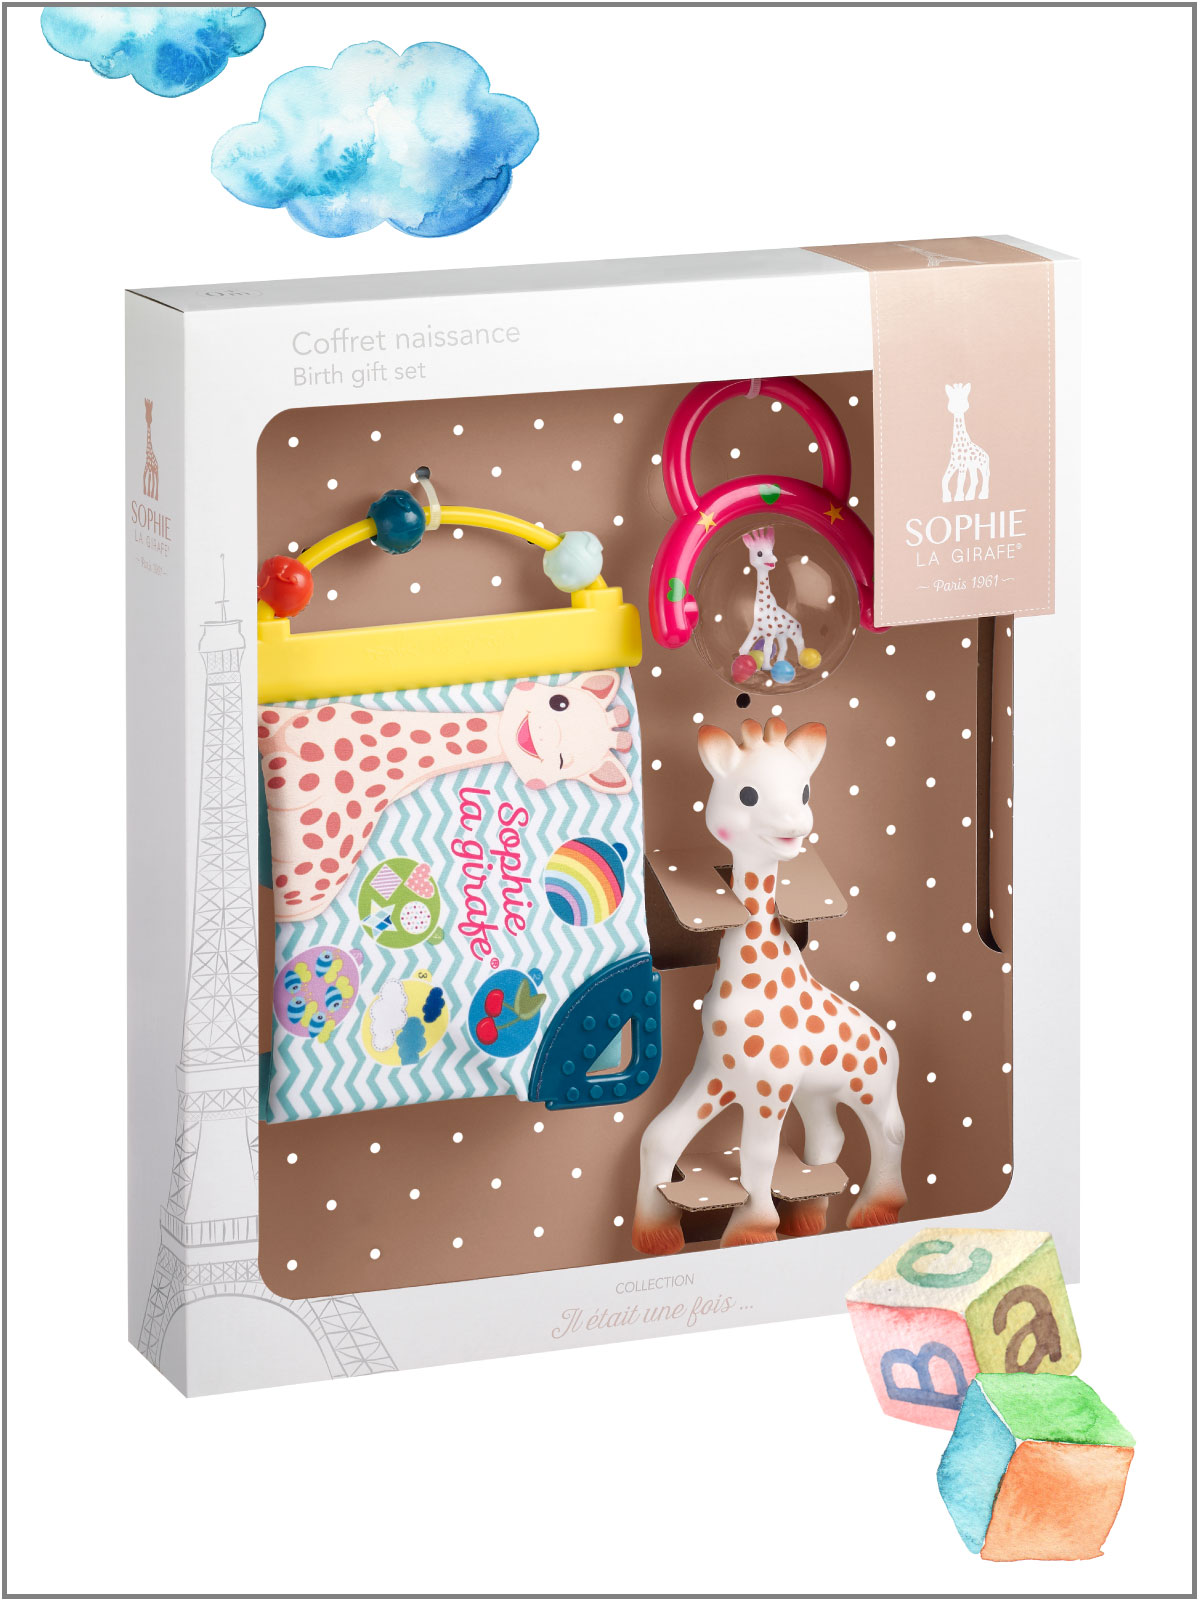 frederickandsophie-sophie_la_girafe-france-activity-book-baby-gift-set-teether